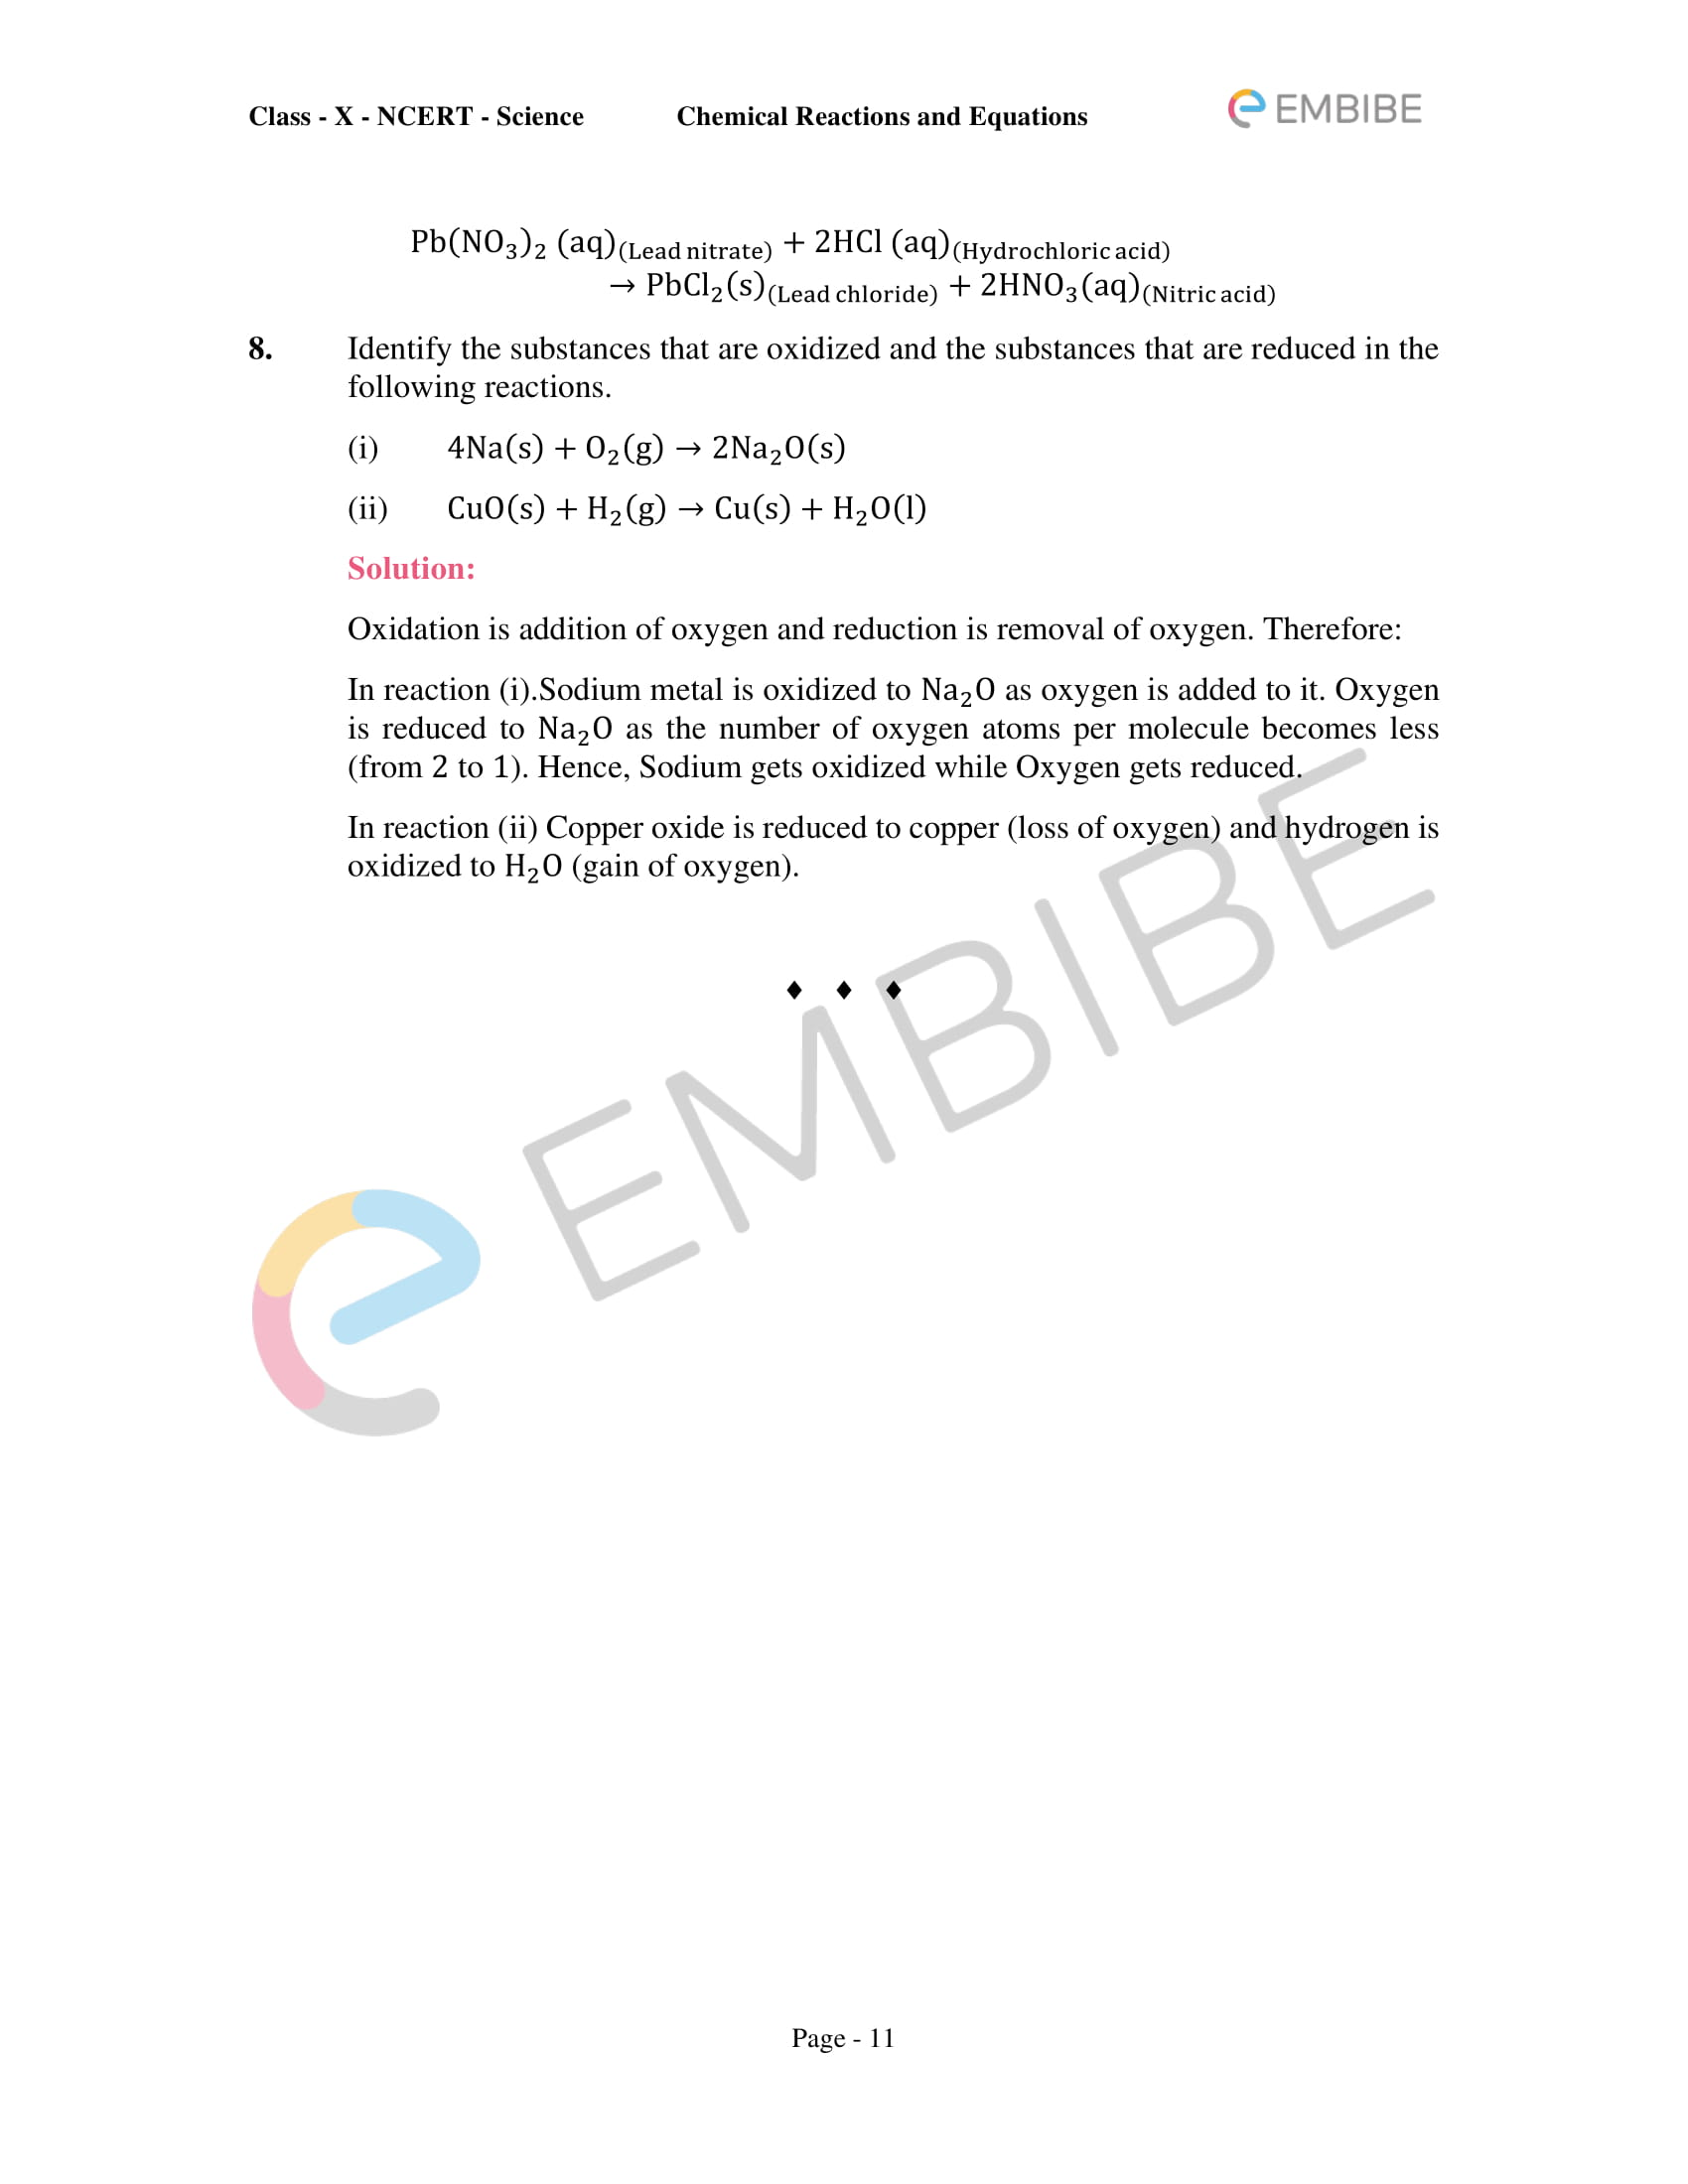 CBSE NCERT Solutions for Class 10 Science Chapter 1: Chemical Reactions And Equations-11